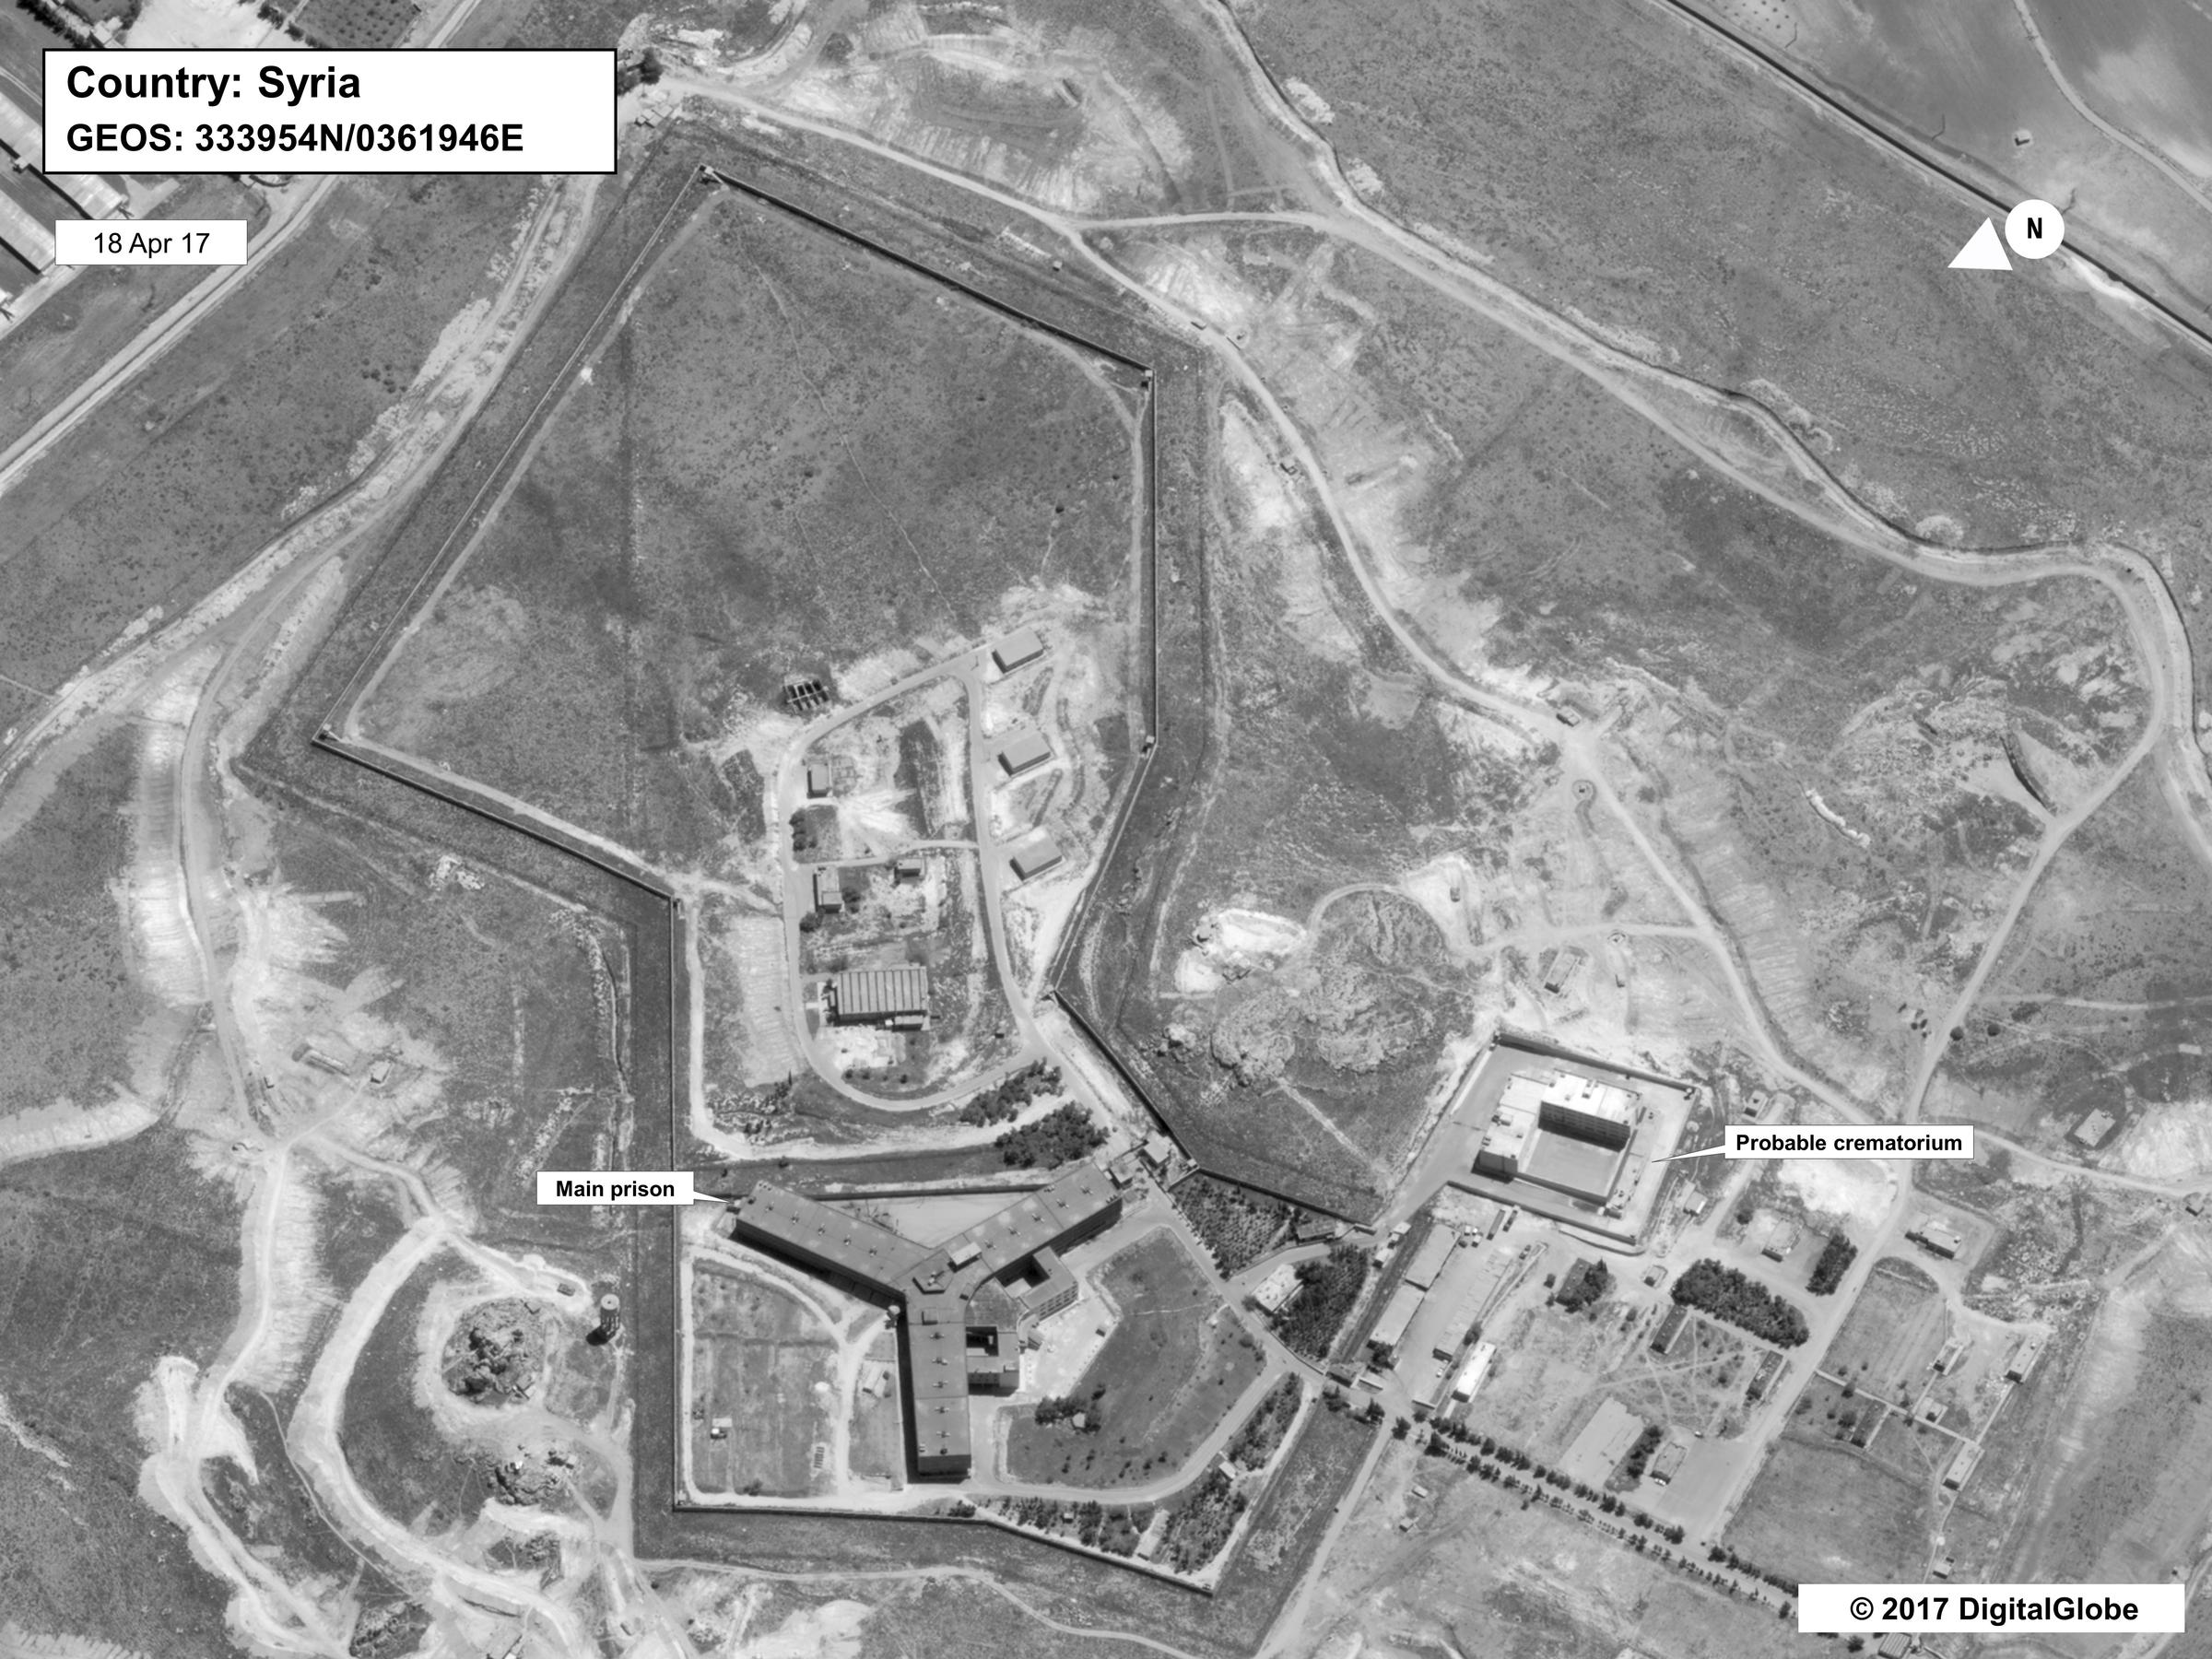 Syrians built crematorium at prison to dispose of bodies, Syria denies accusations